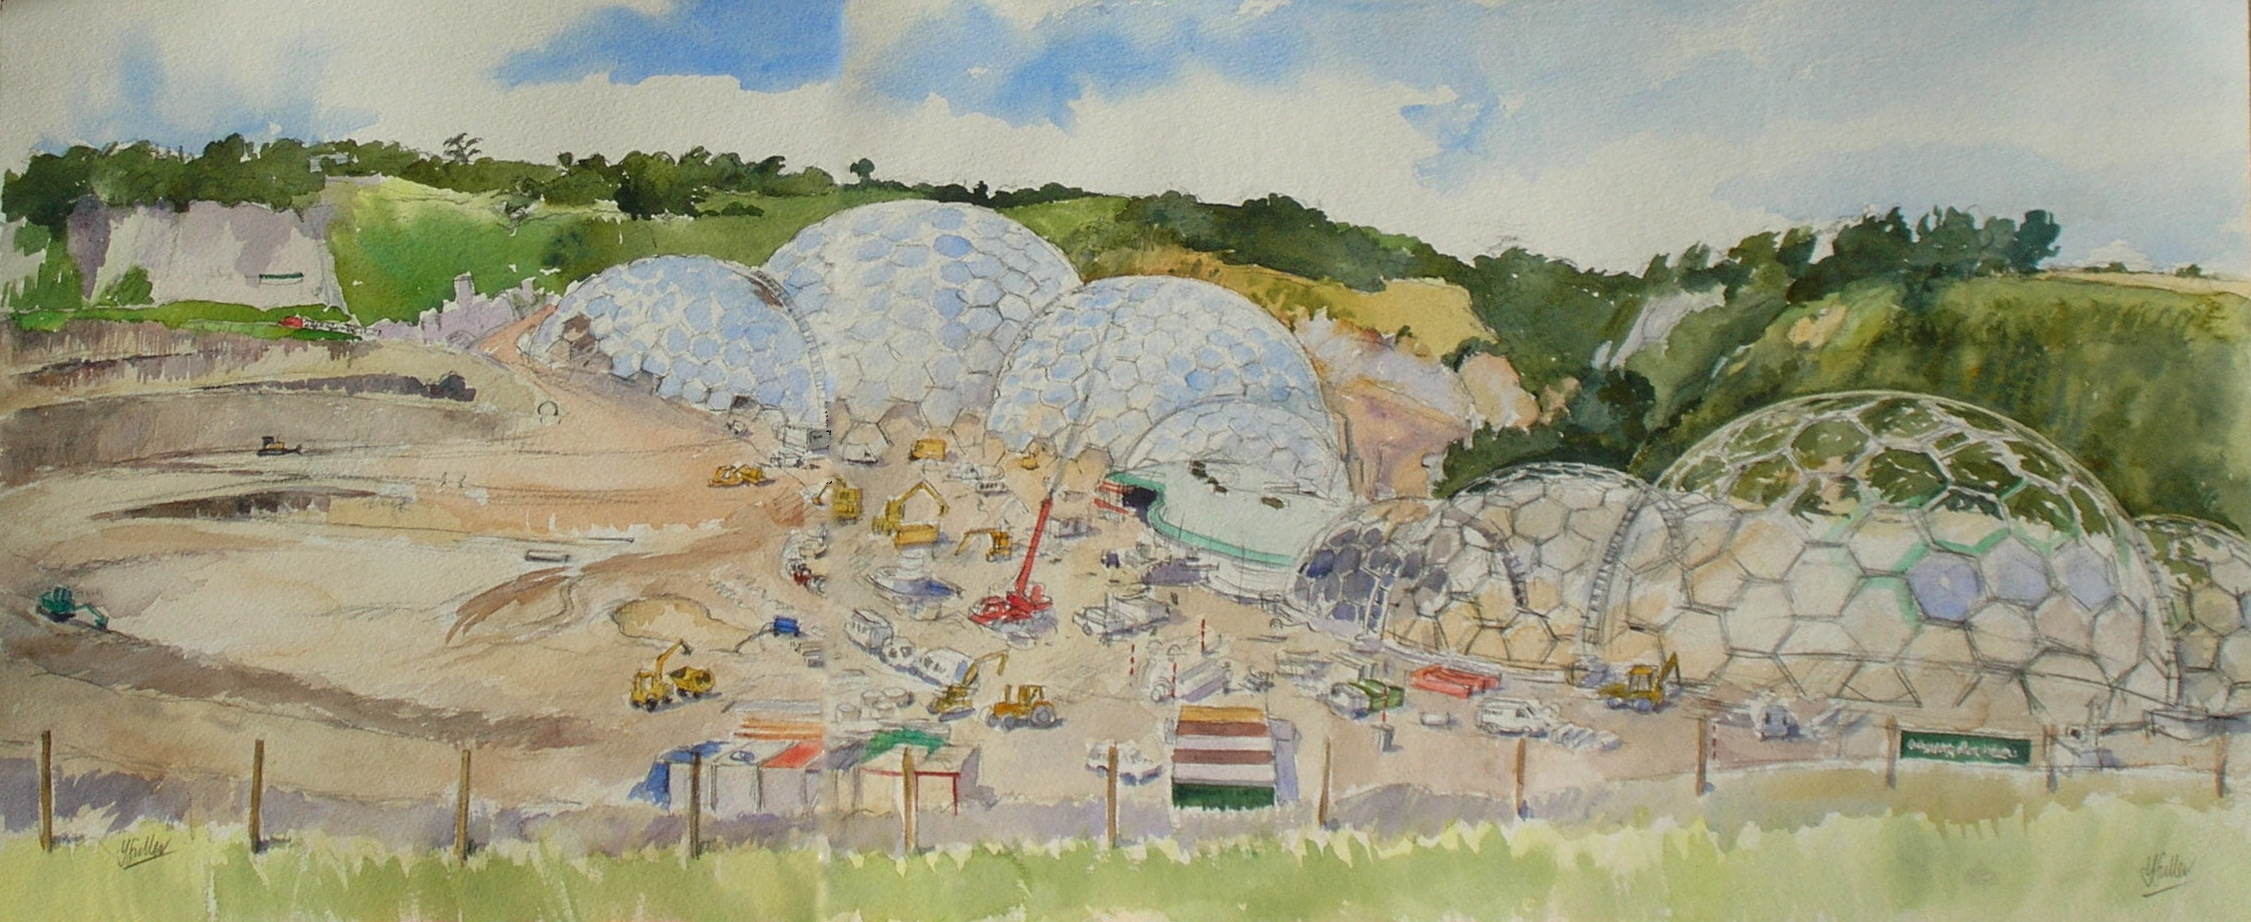 The Eden Project a & b